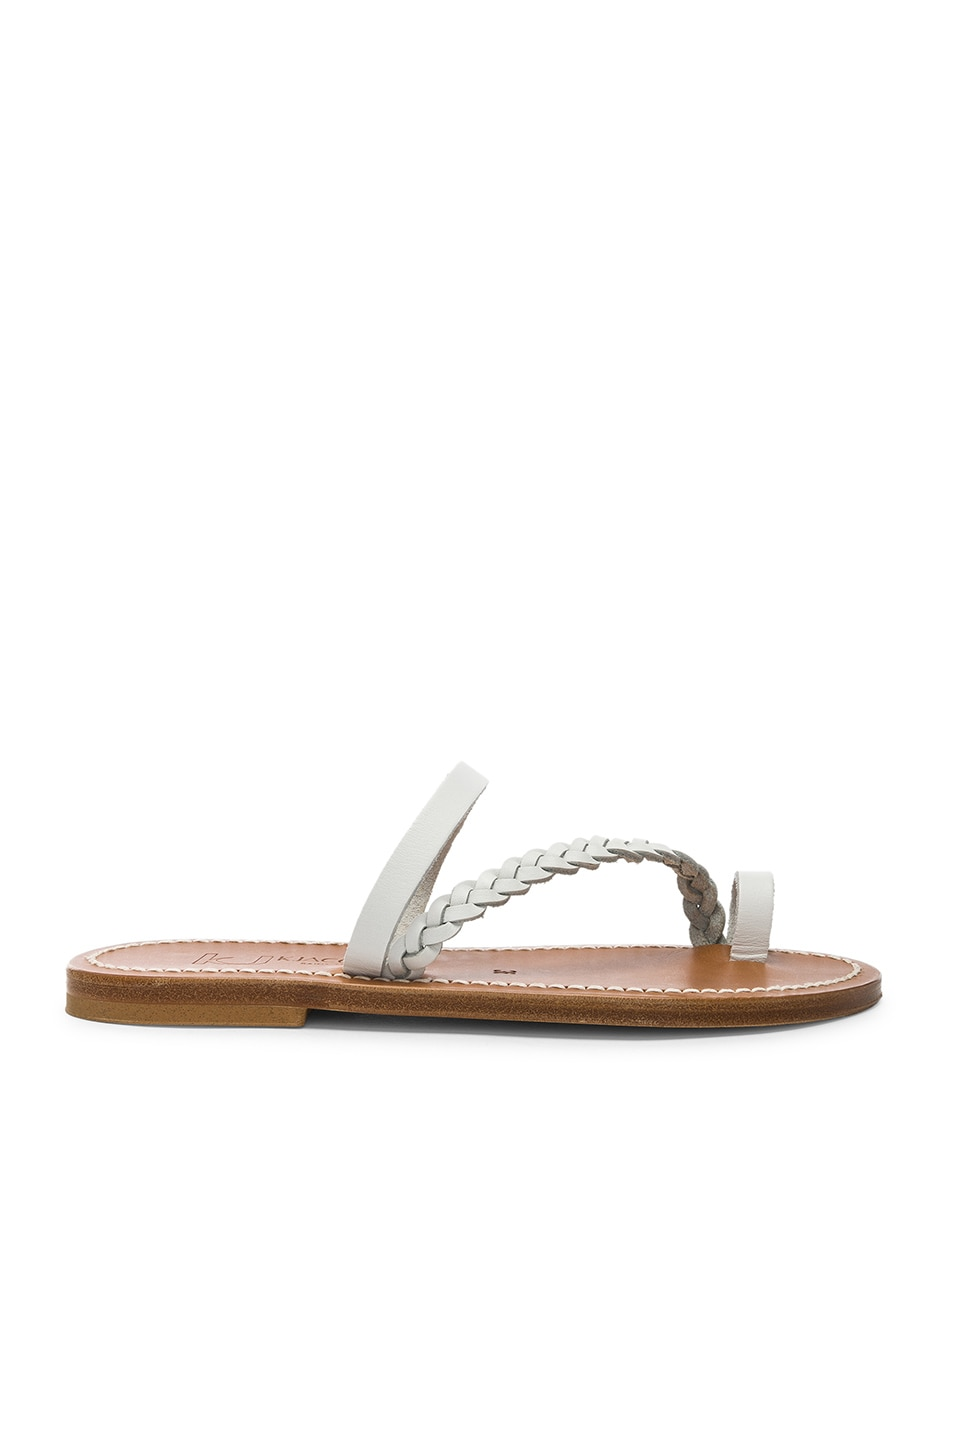 Image 1 of K Jacques Isaure Sandal in Pul Blanc